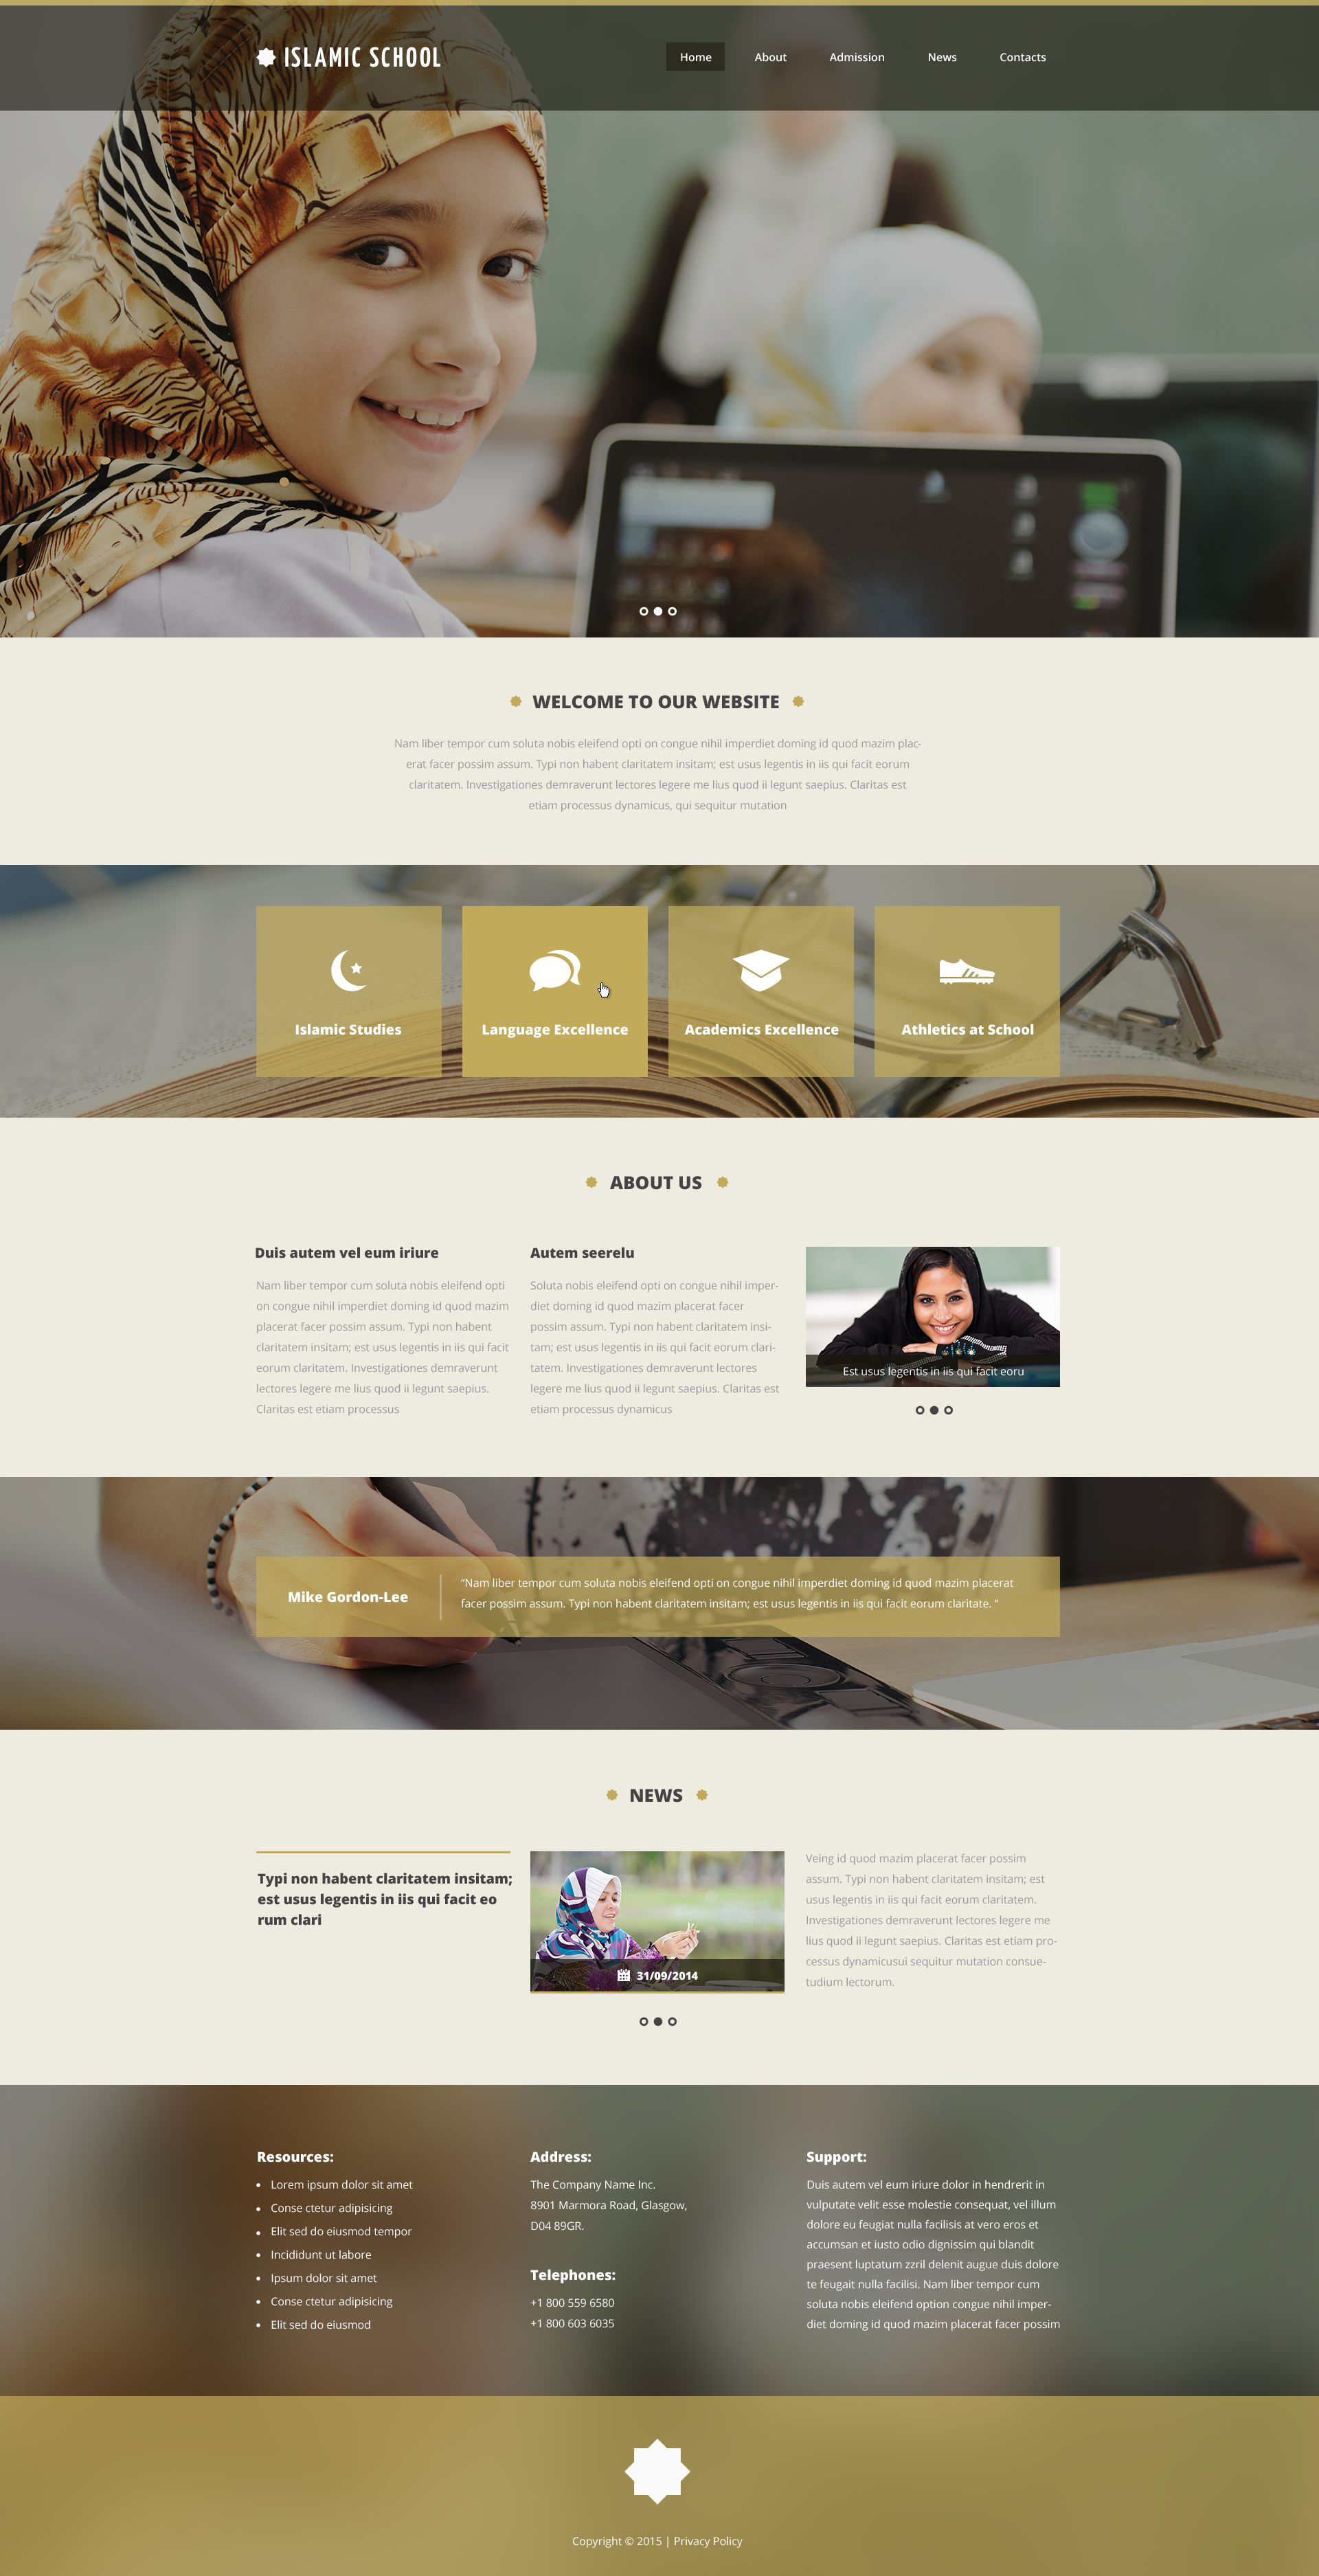 The Islamic School Responsive Javascript Animated Design 53241, one of the best website templates of its kind (education, most popular), also known as islamic school website template, education website template, science website template, admission website template, faculty website template, department website template, class website template, alumni website template, student website template, professor website template, enrolment website template, union website template, library website template, auditorium website template, graduate website template, direction website template, tests website template, entrance website template, examination website template, exam website template, community website template, party website template, administration website template, rector website template, head website template, dean website template, college website template, scout and related with islamic school, education, science, admission, faculty, department, class, alumni, student, professor, enrolment, union, library, auditorium, graduate, direction, tests, entrance, examination, exam, community, party, administration, rector, head, dean, college, scout, etc.